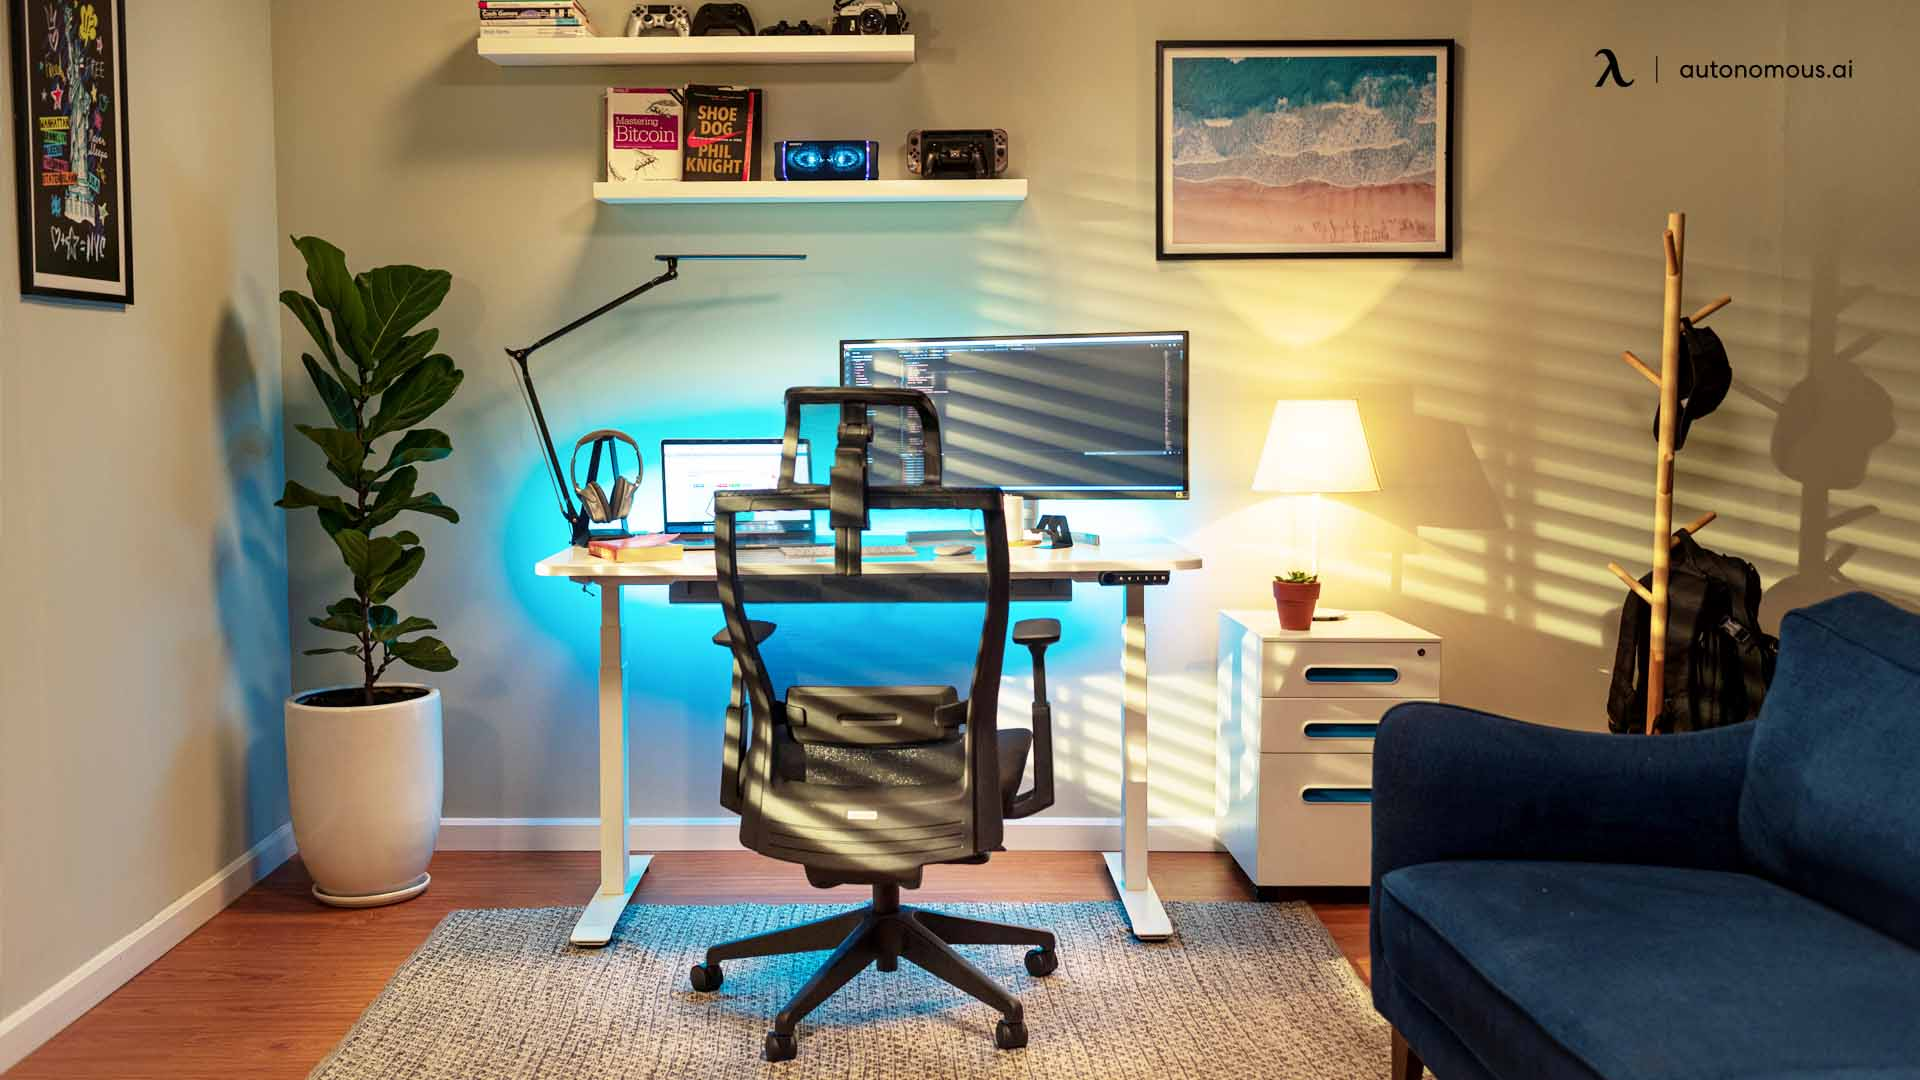 Centralized Office + Occasional Work From Home